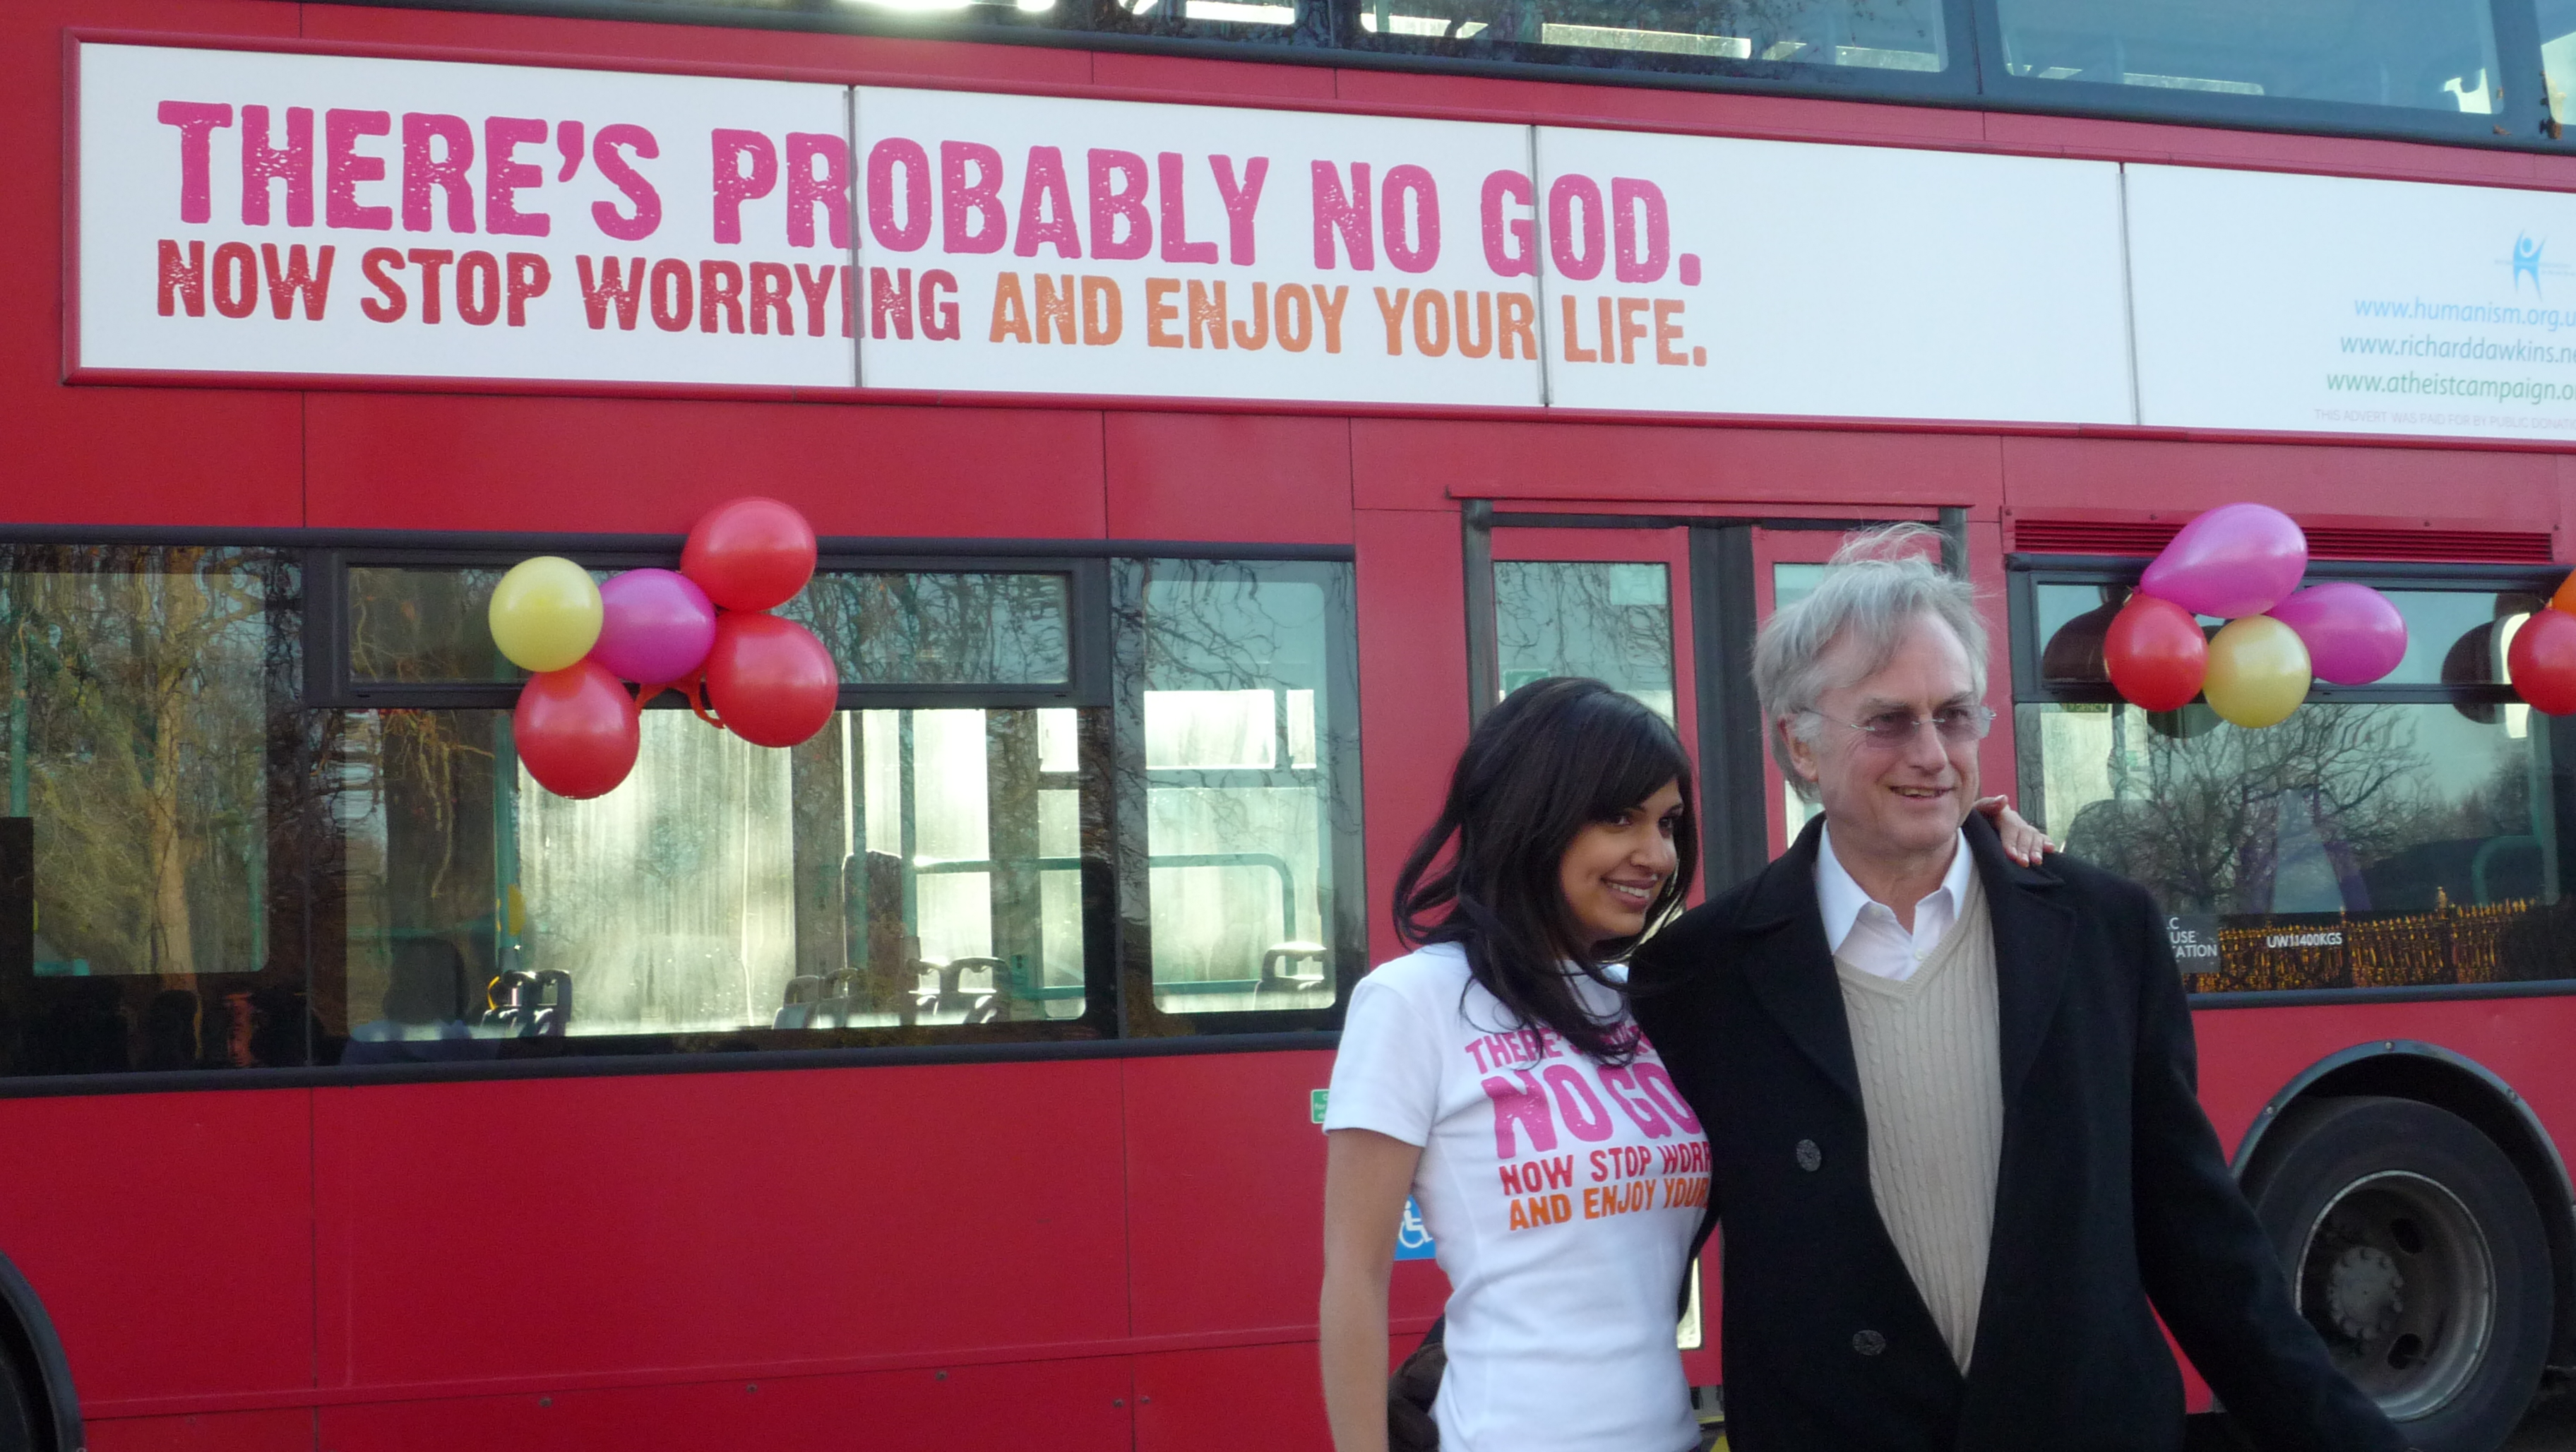 Richard Dawkins and Ariane Sherine, who created the slogan